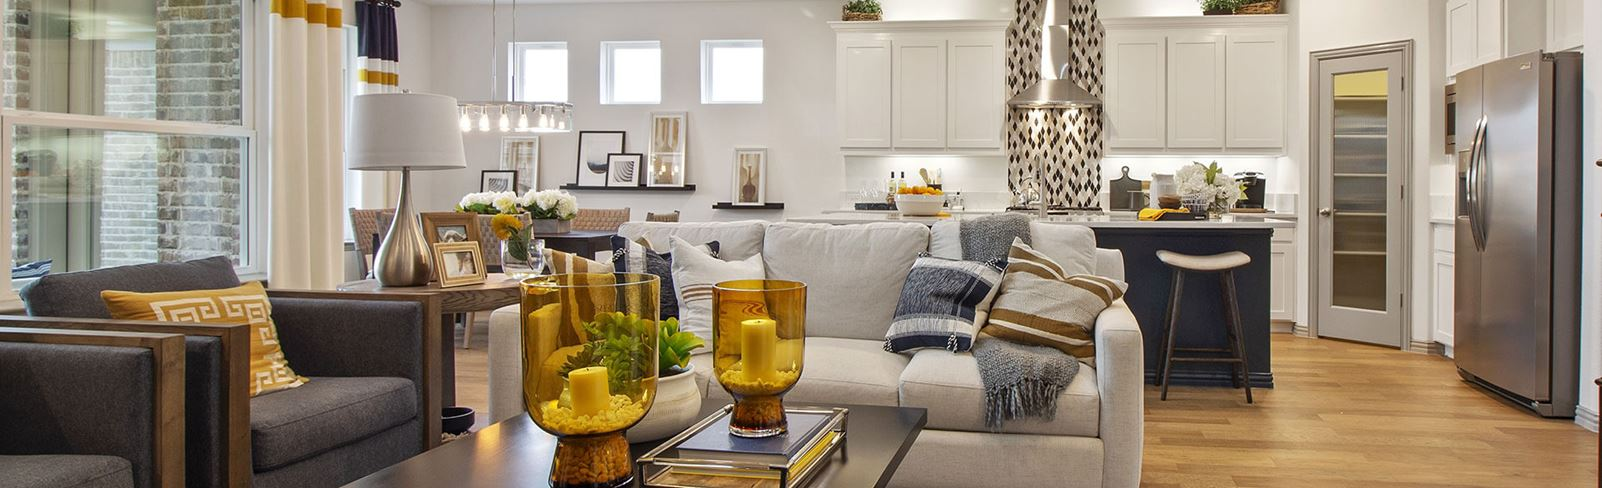 Landon Homes New Home Living Room at The Grove Frisco community